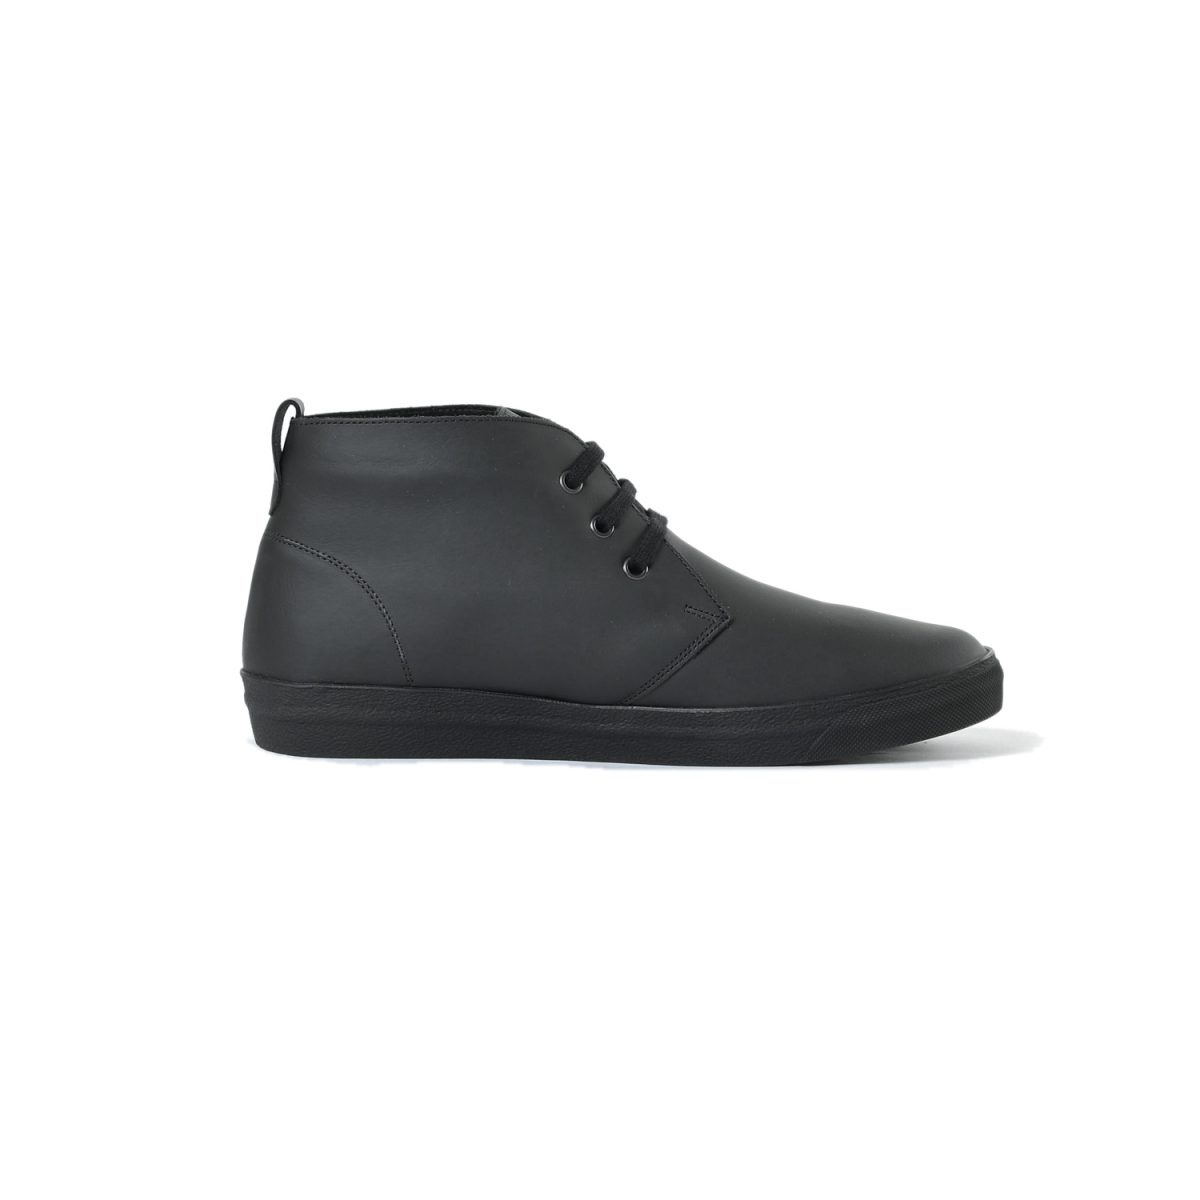 Tisza shoes - Alfa - Black padded